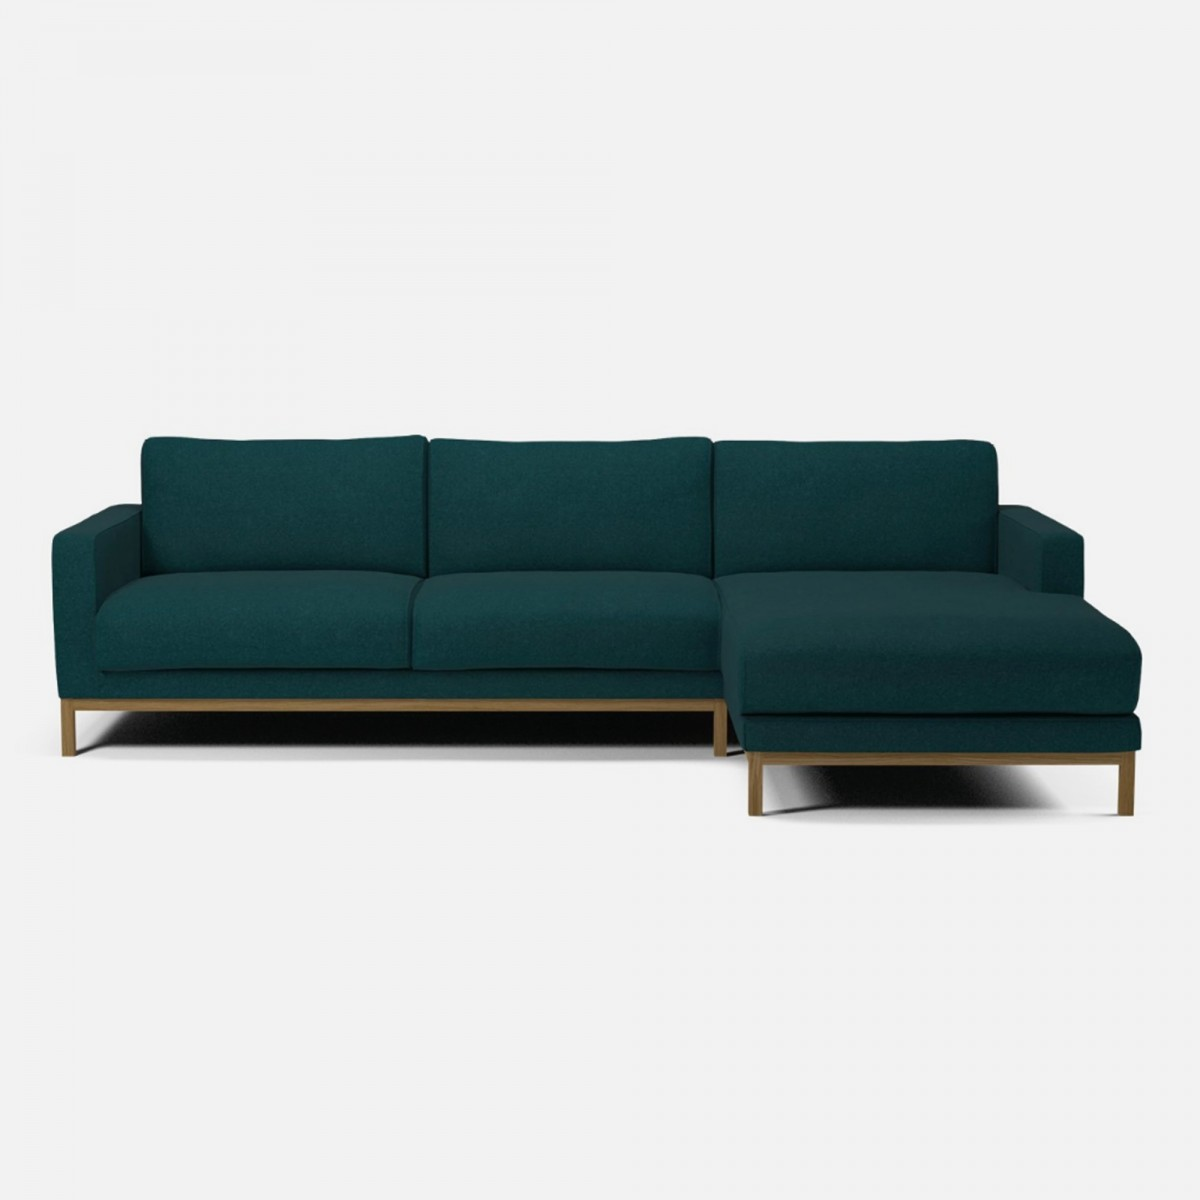 North 3 seaters sofa with chaise longue bolia for Chaise longue fr